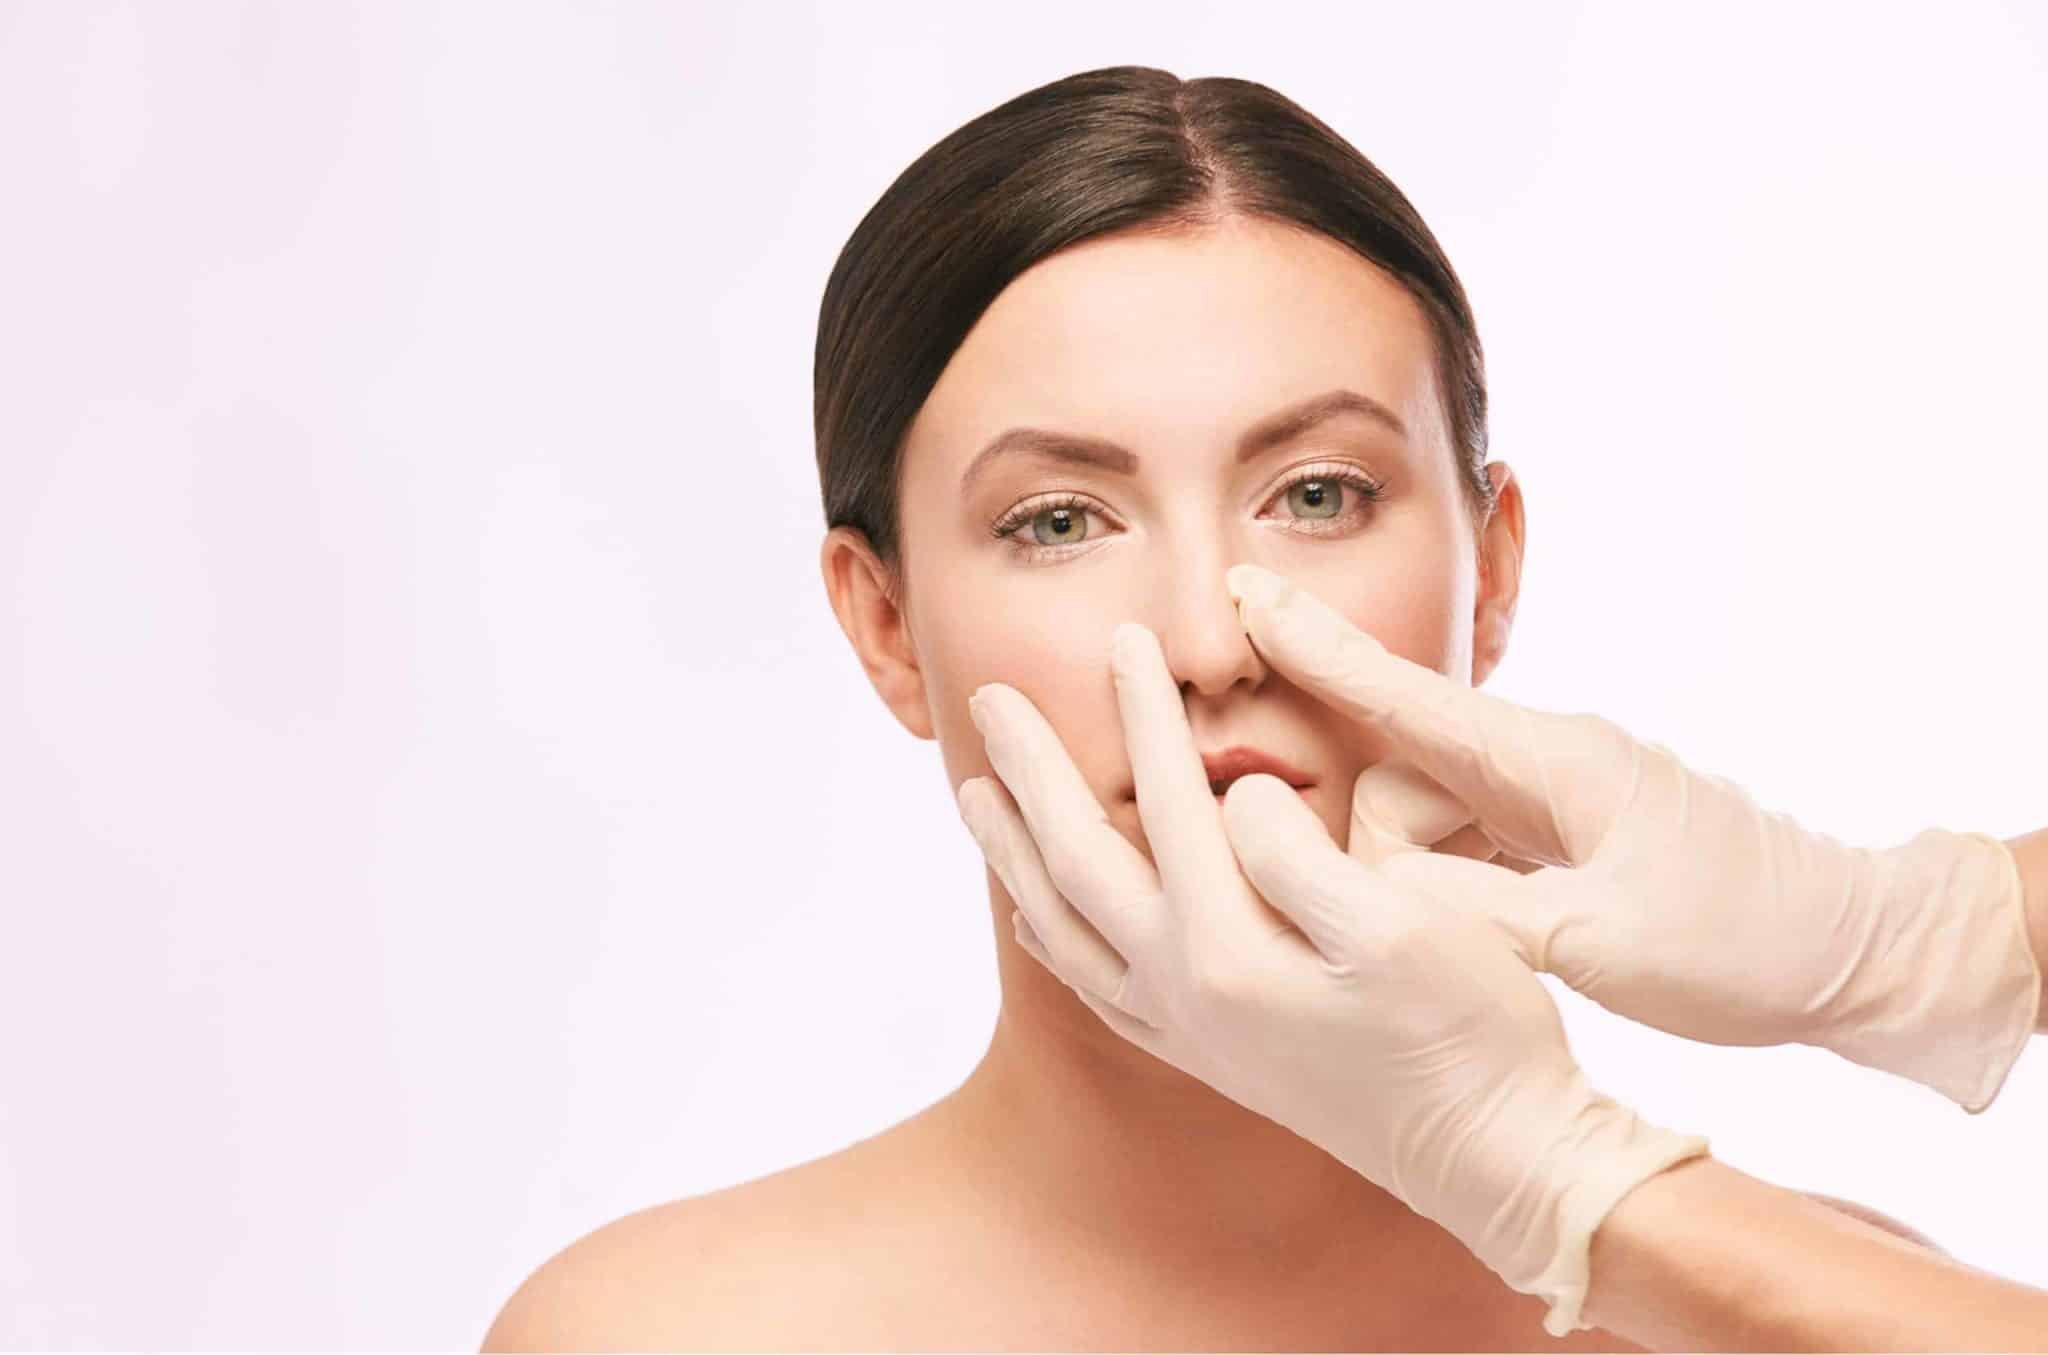 how to fix a crooked nose